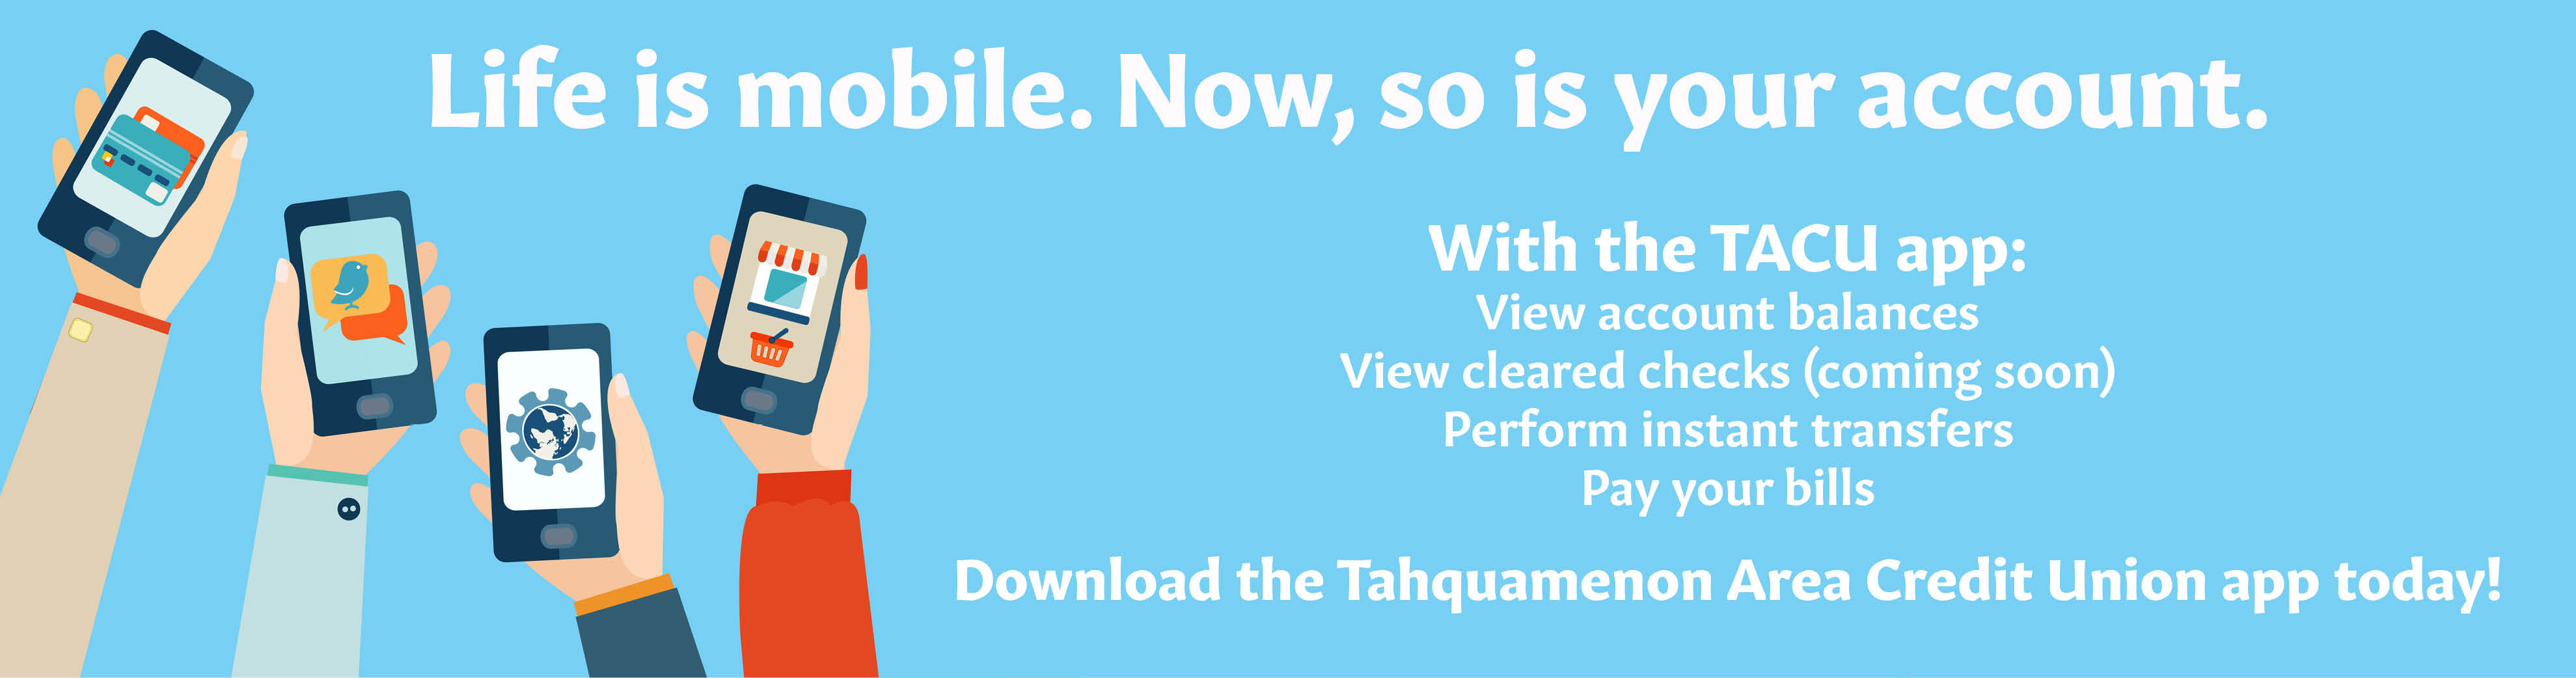 Download the Tahquamenon Area Credit Union app today